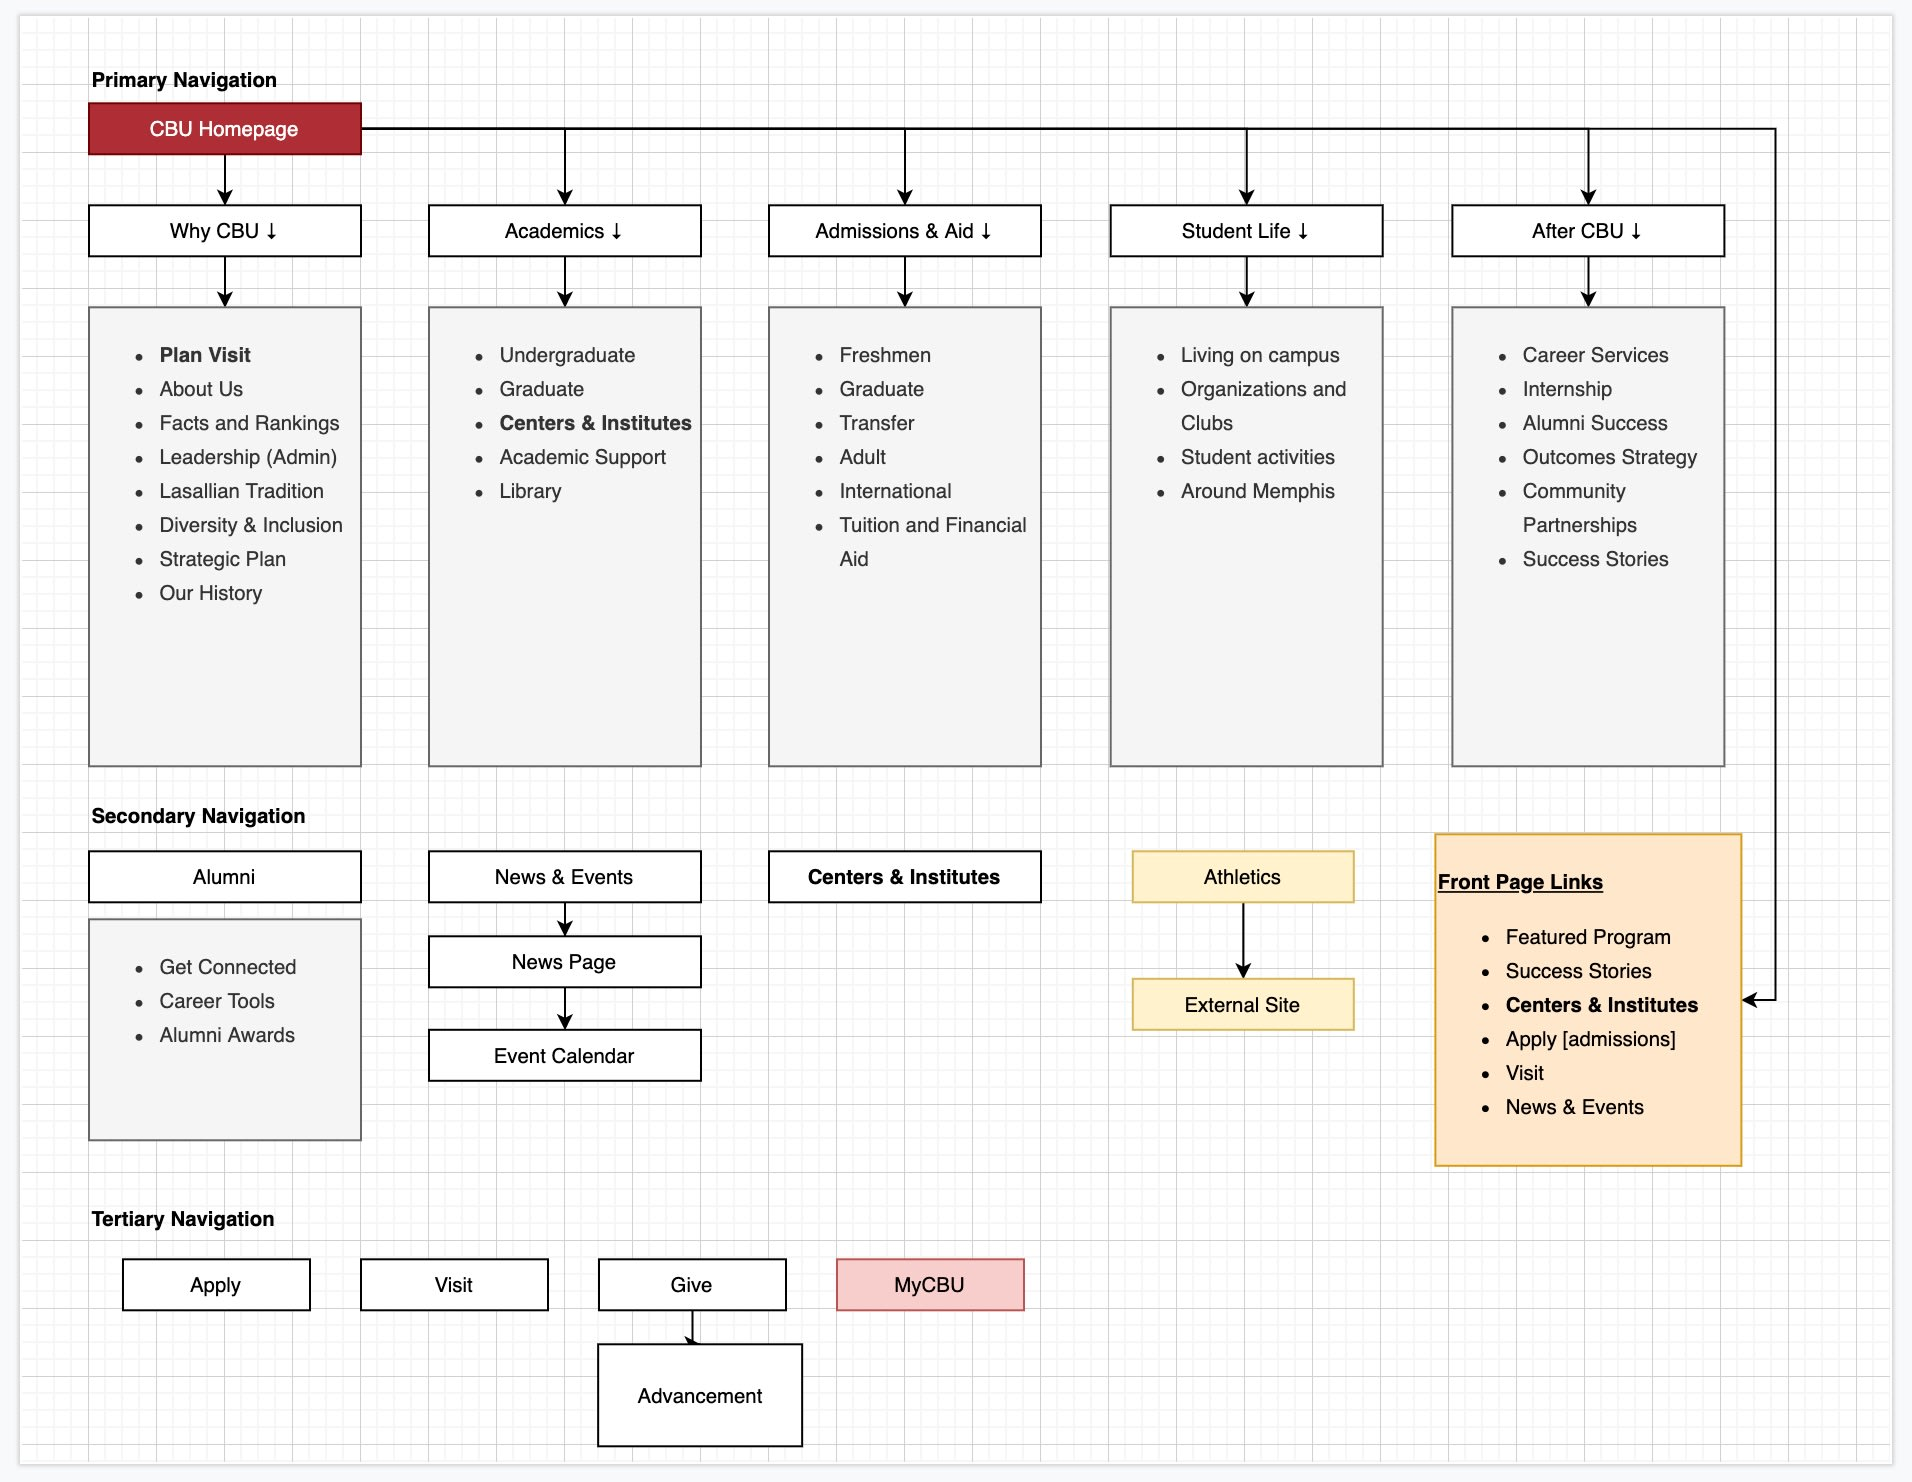 Information Architecture Exploration for CBU